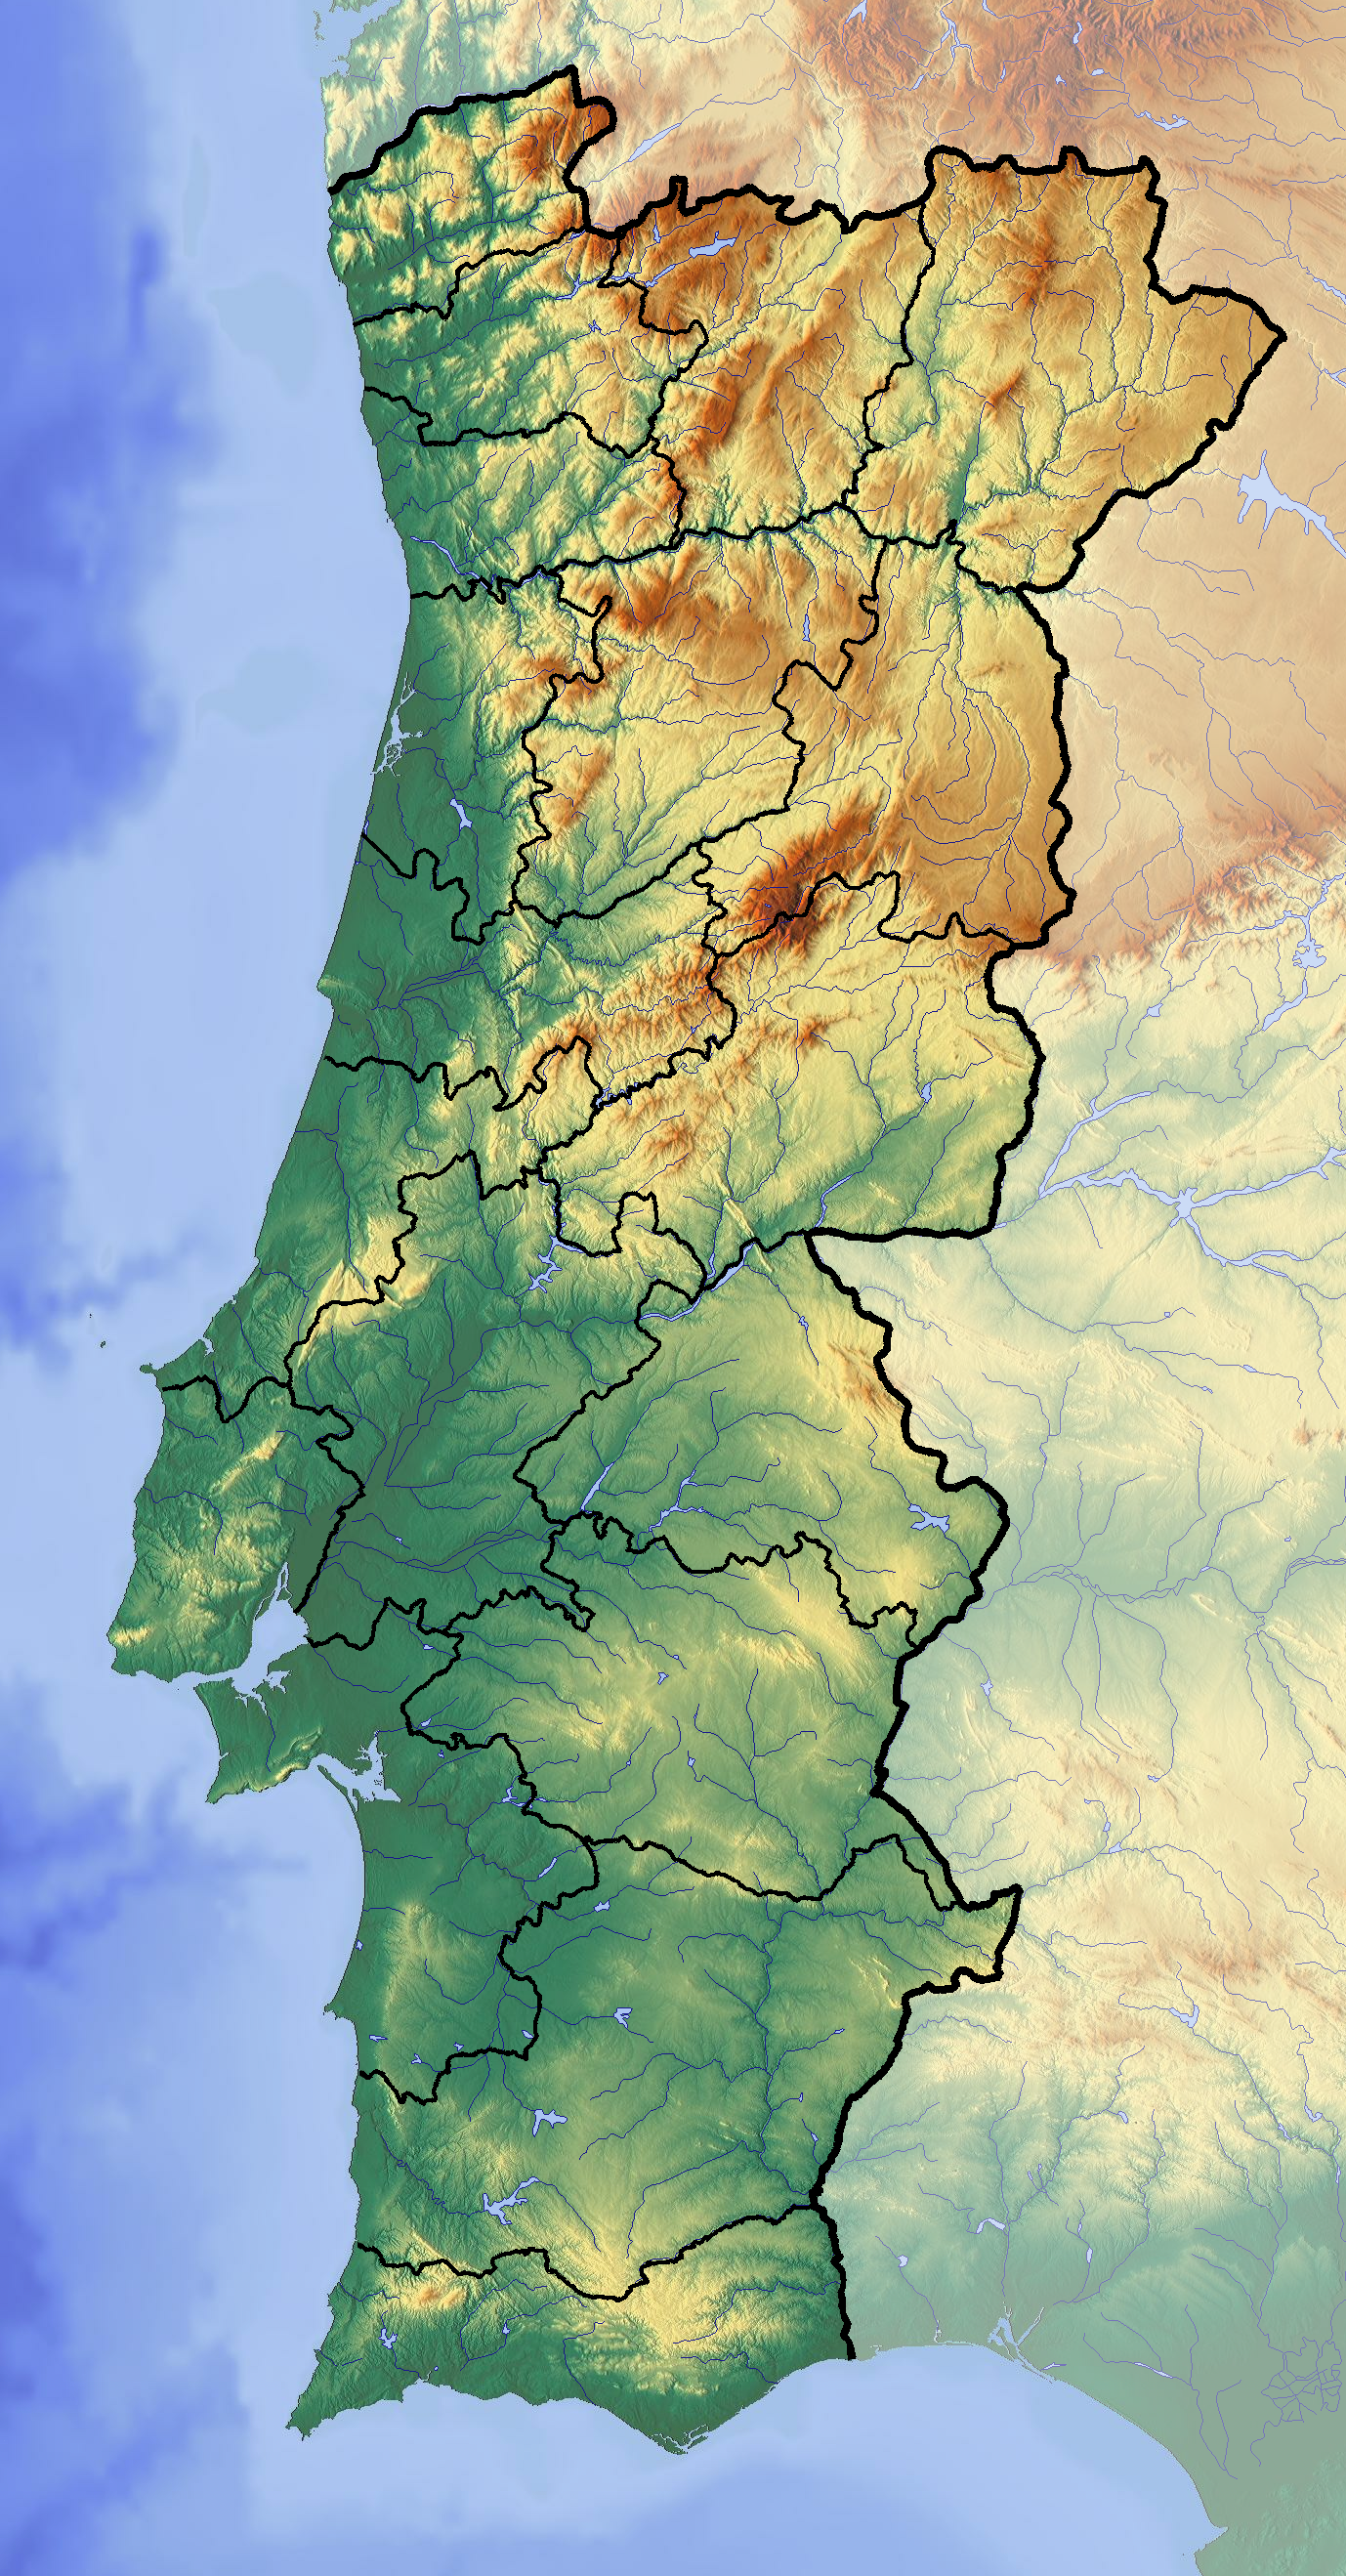 mapa portugal 2012 File:Portugal location map Topographic.png   Wikipedia mapa portugal 2012